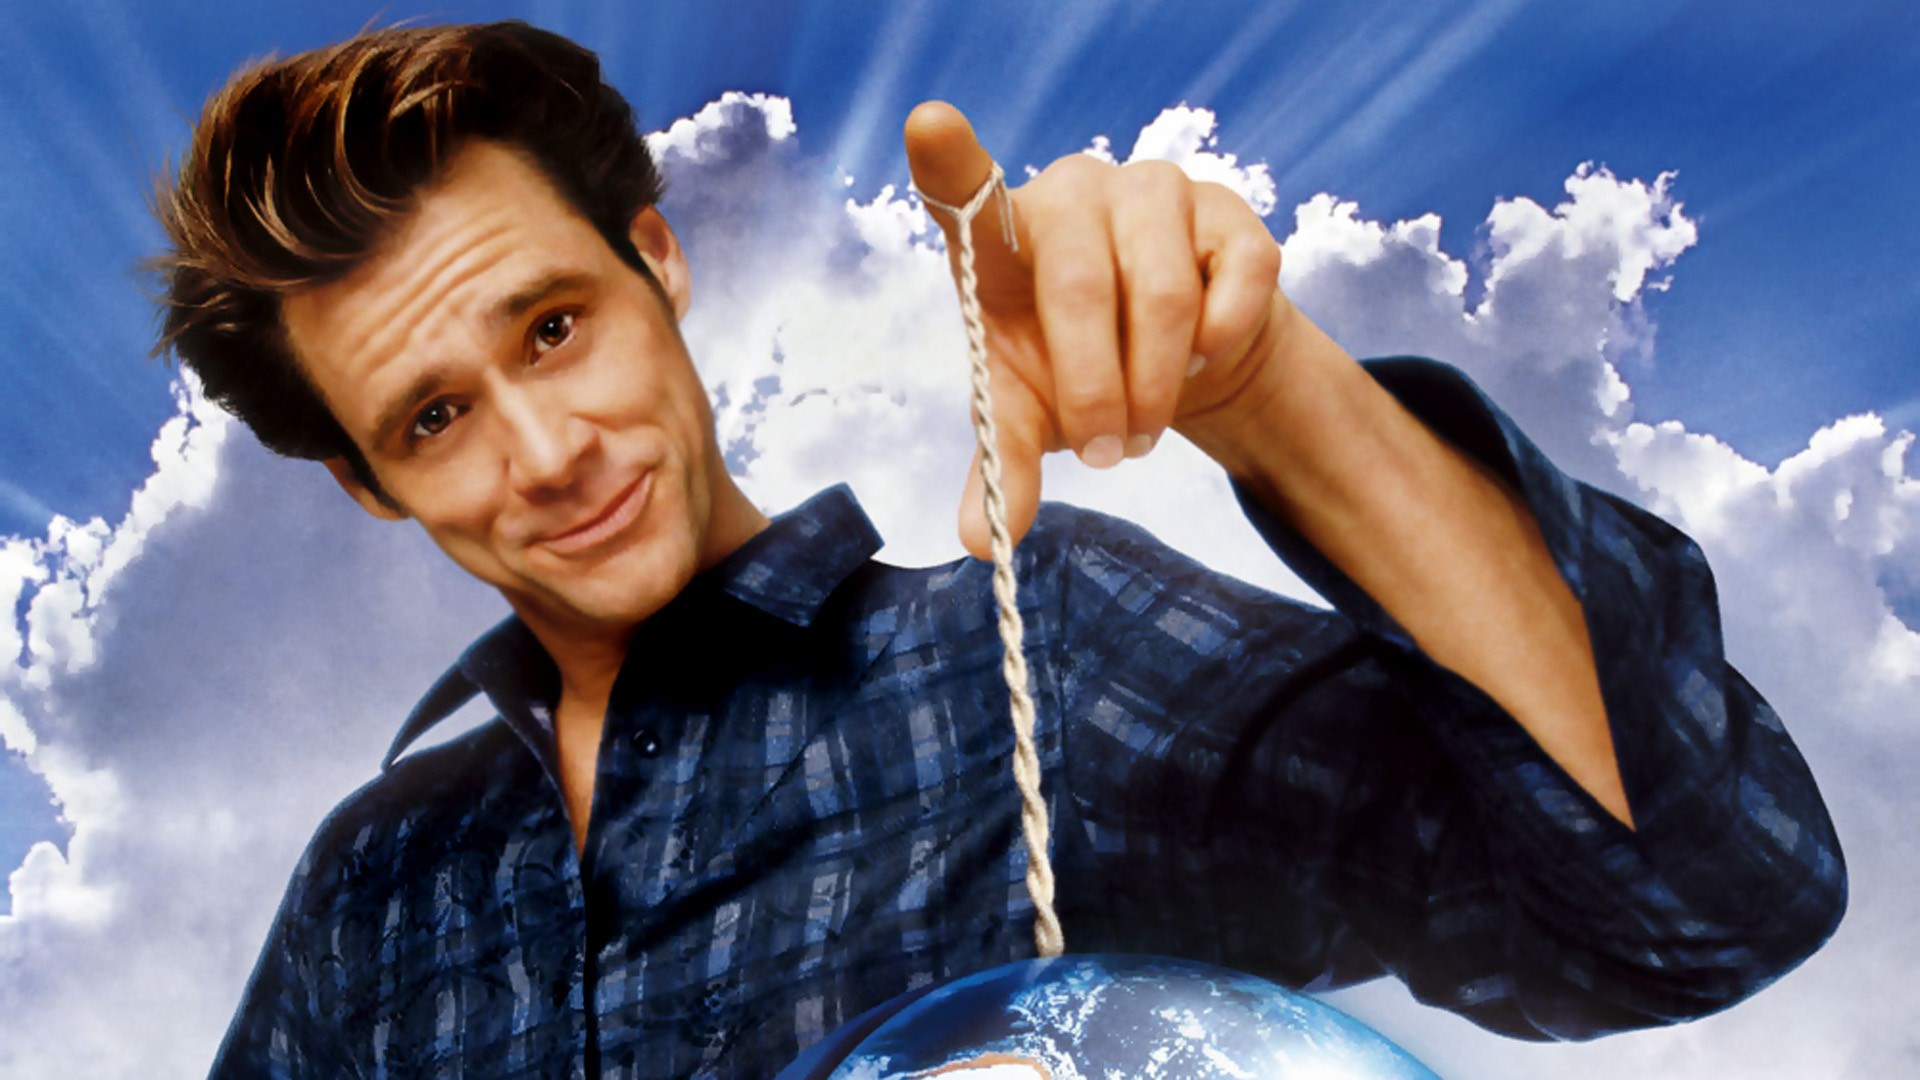 download Jim Carrey Wallpapers High Quality Download 1920x1080